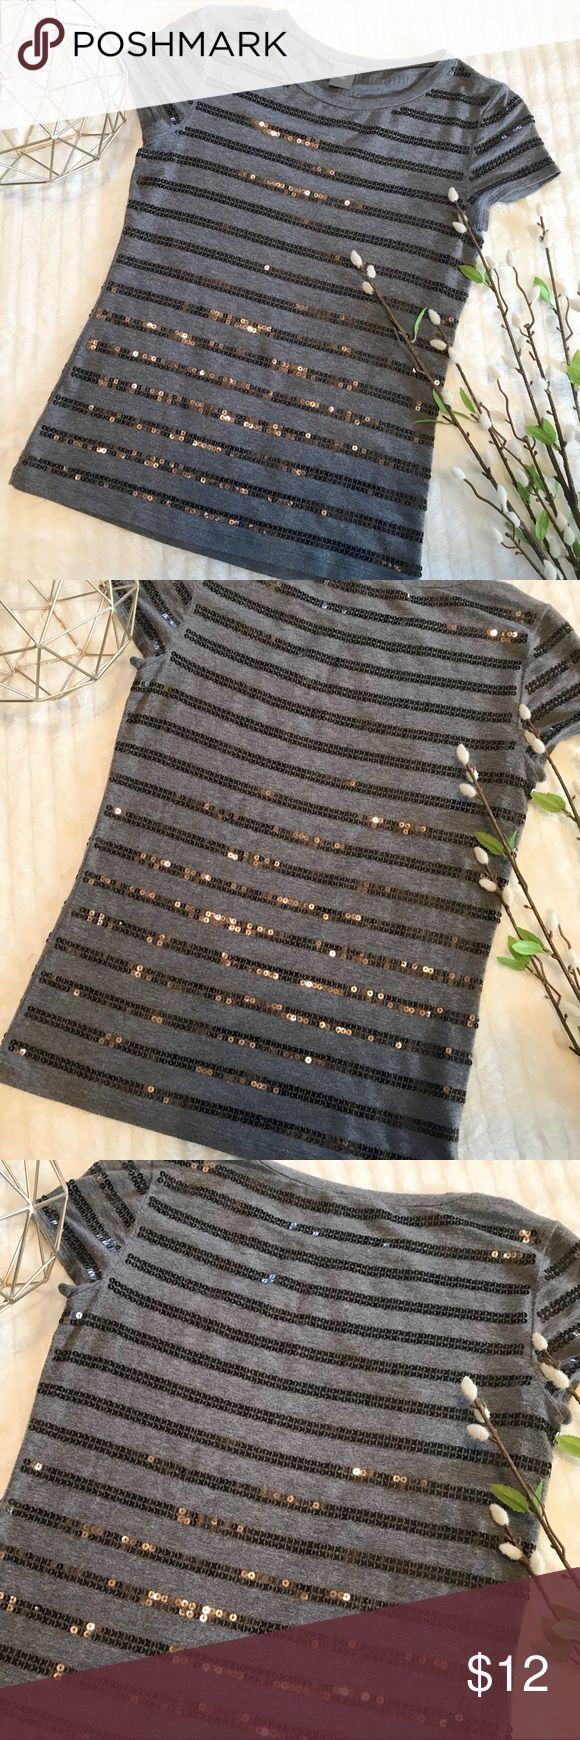 Ann Taylor Sequence Top Adorable Ann Taylor Petites Short Sleeve with Black sequence in stripes. Soft and light weight. In good used condition. Size XSP. 95% Rayon, 5% Spandex. Ann Taylor Tops Tees - Short Sleeve